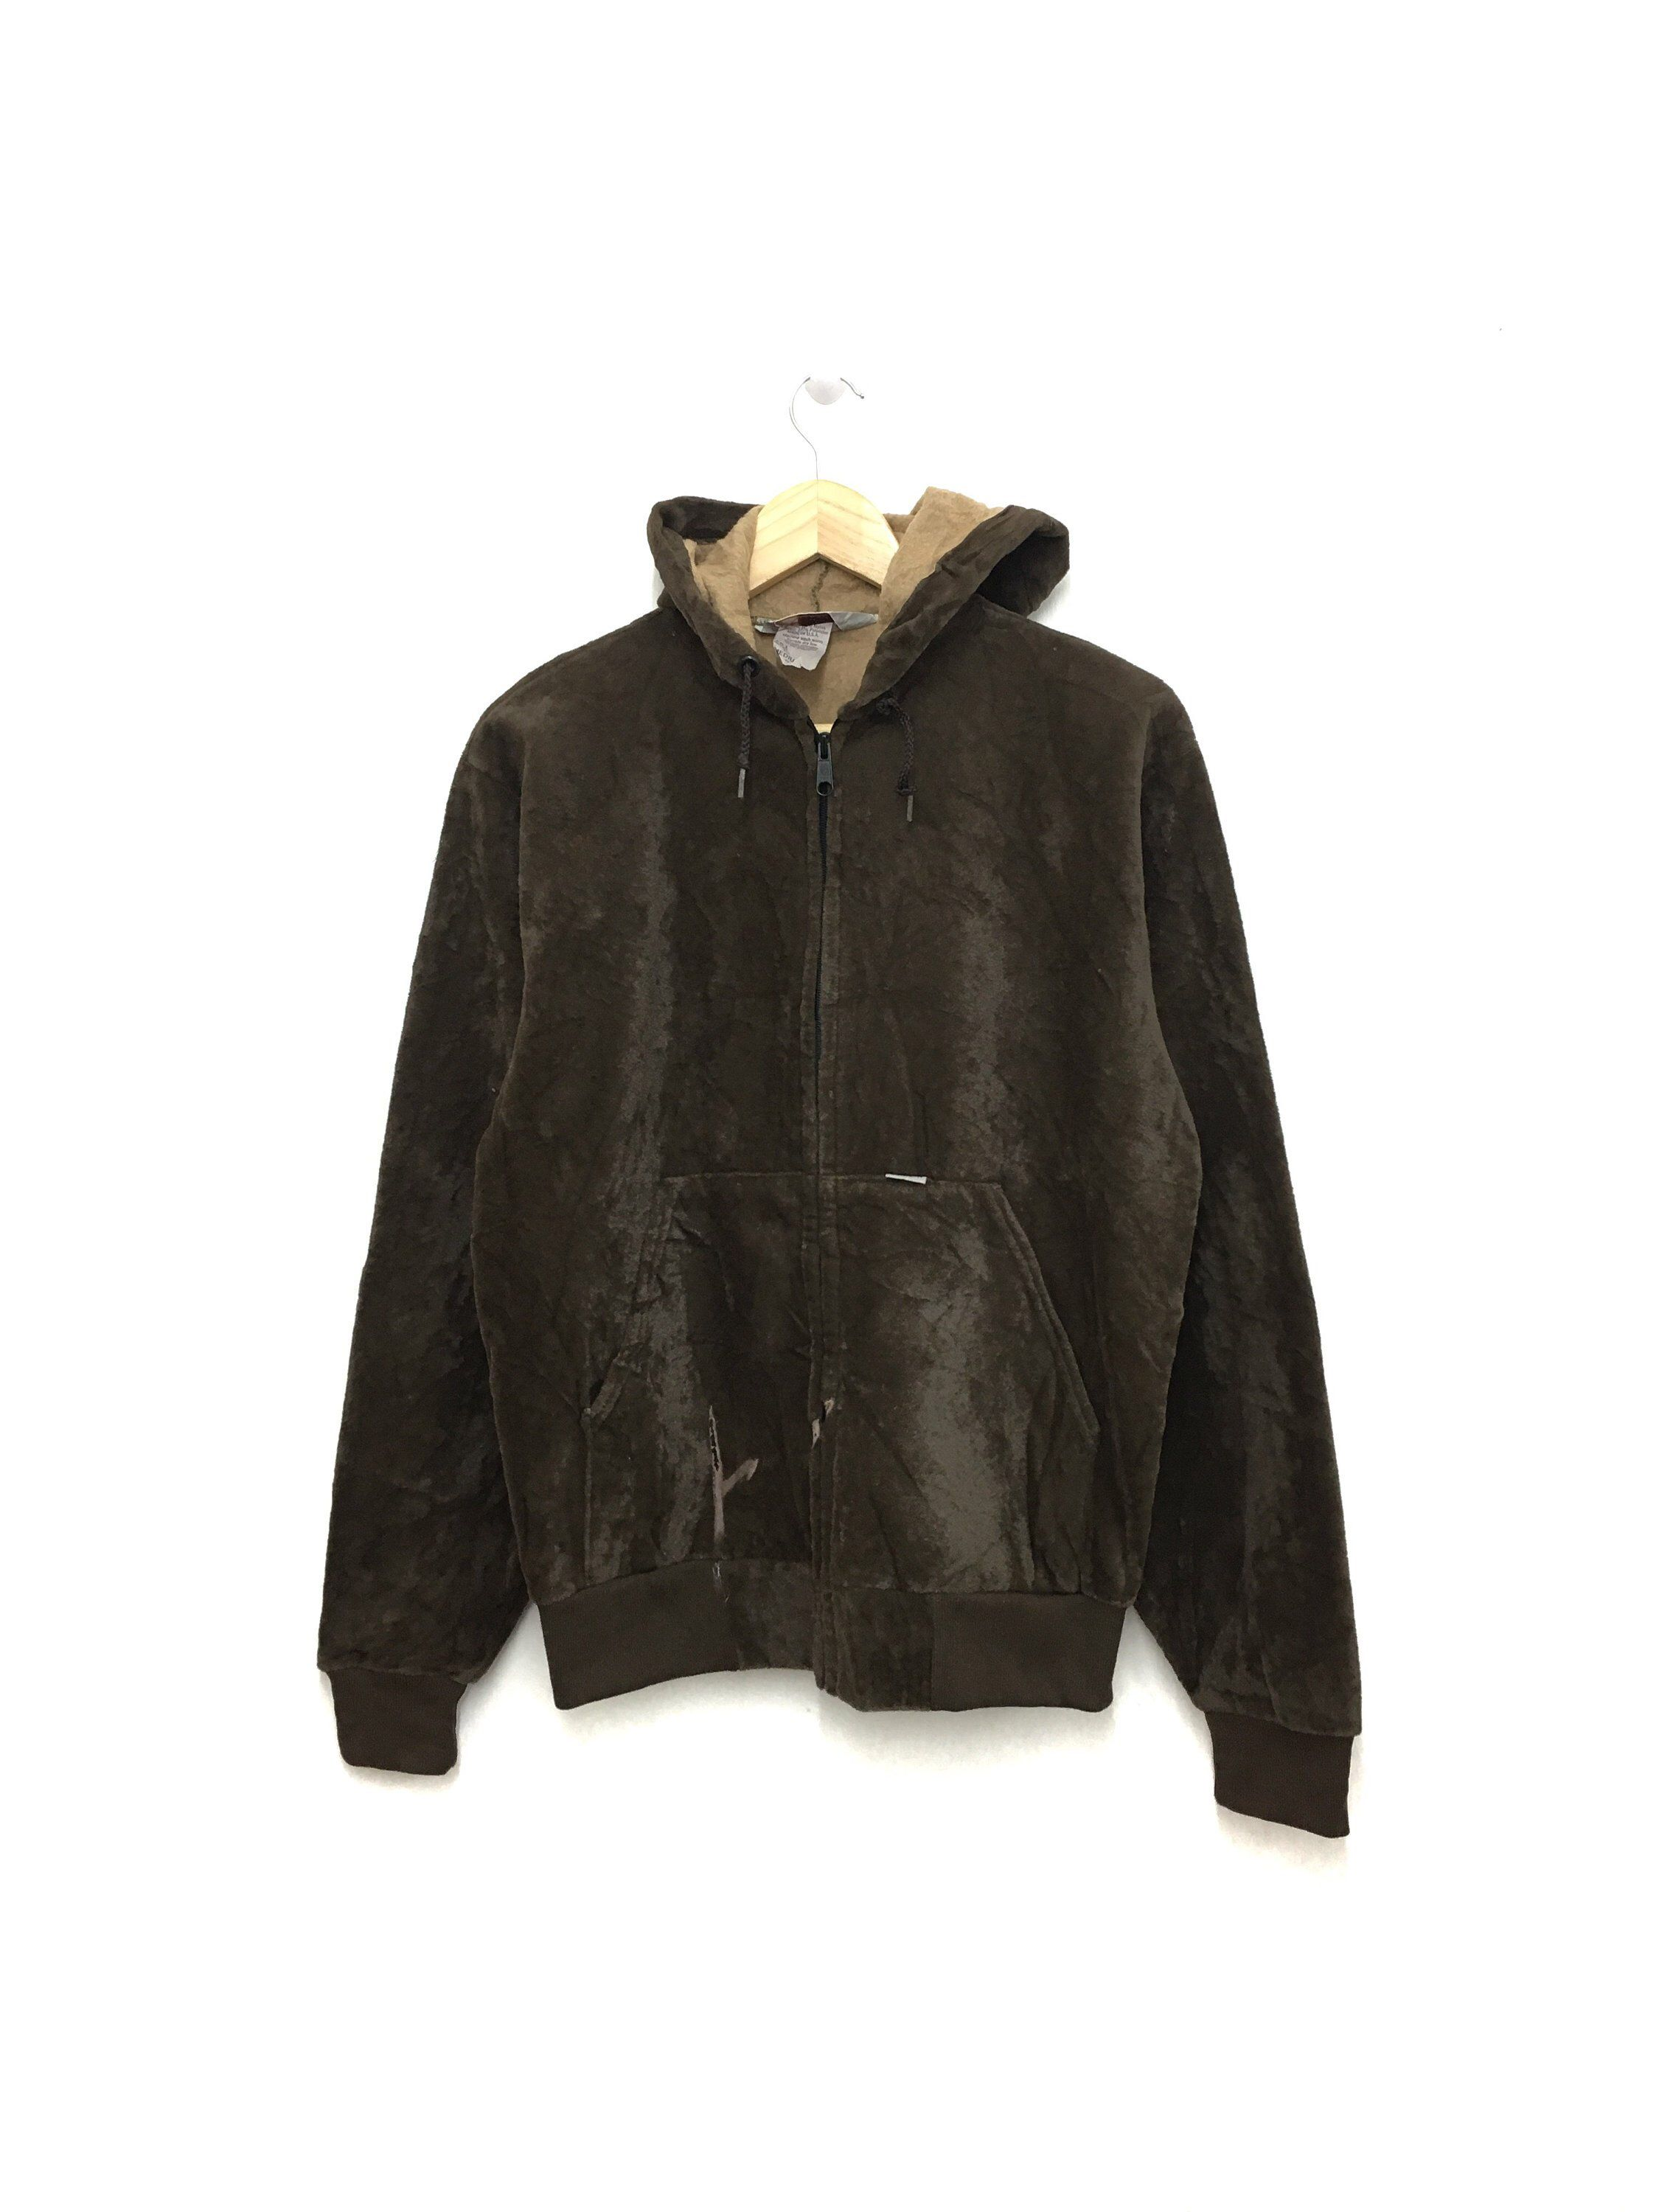 Excited to share this item from my  etsy shop  Rare!! Vintage CARHARTT  Velvet Zipper Sweater Jacket Hoodie Brown Color Medium Size Made In Usa   clothing ... f00b0c3a7